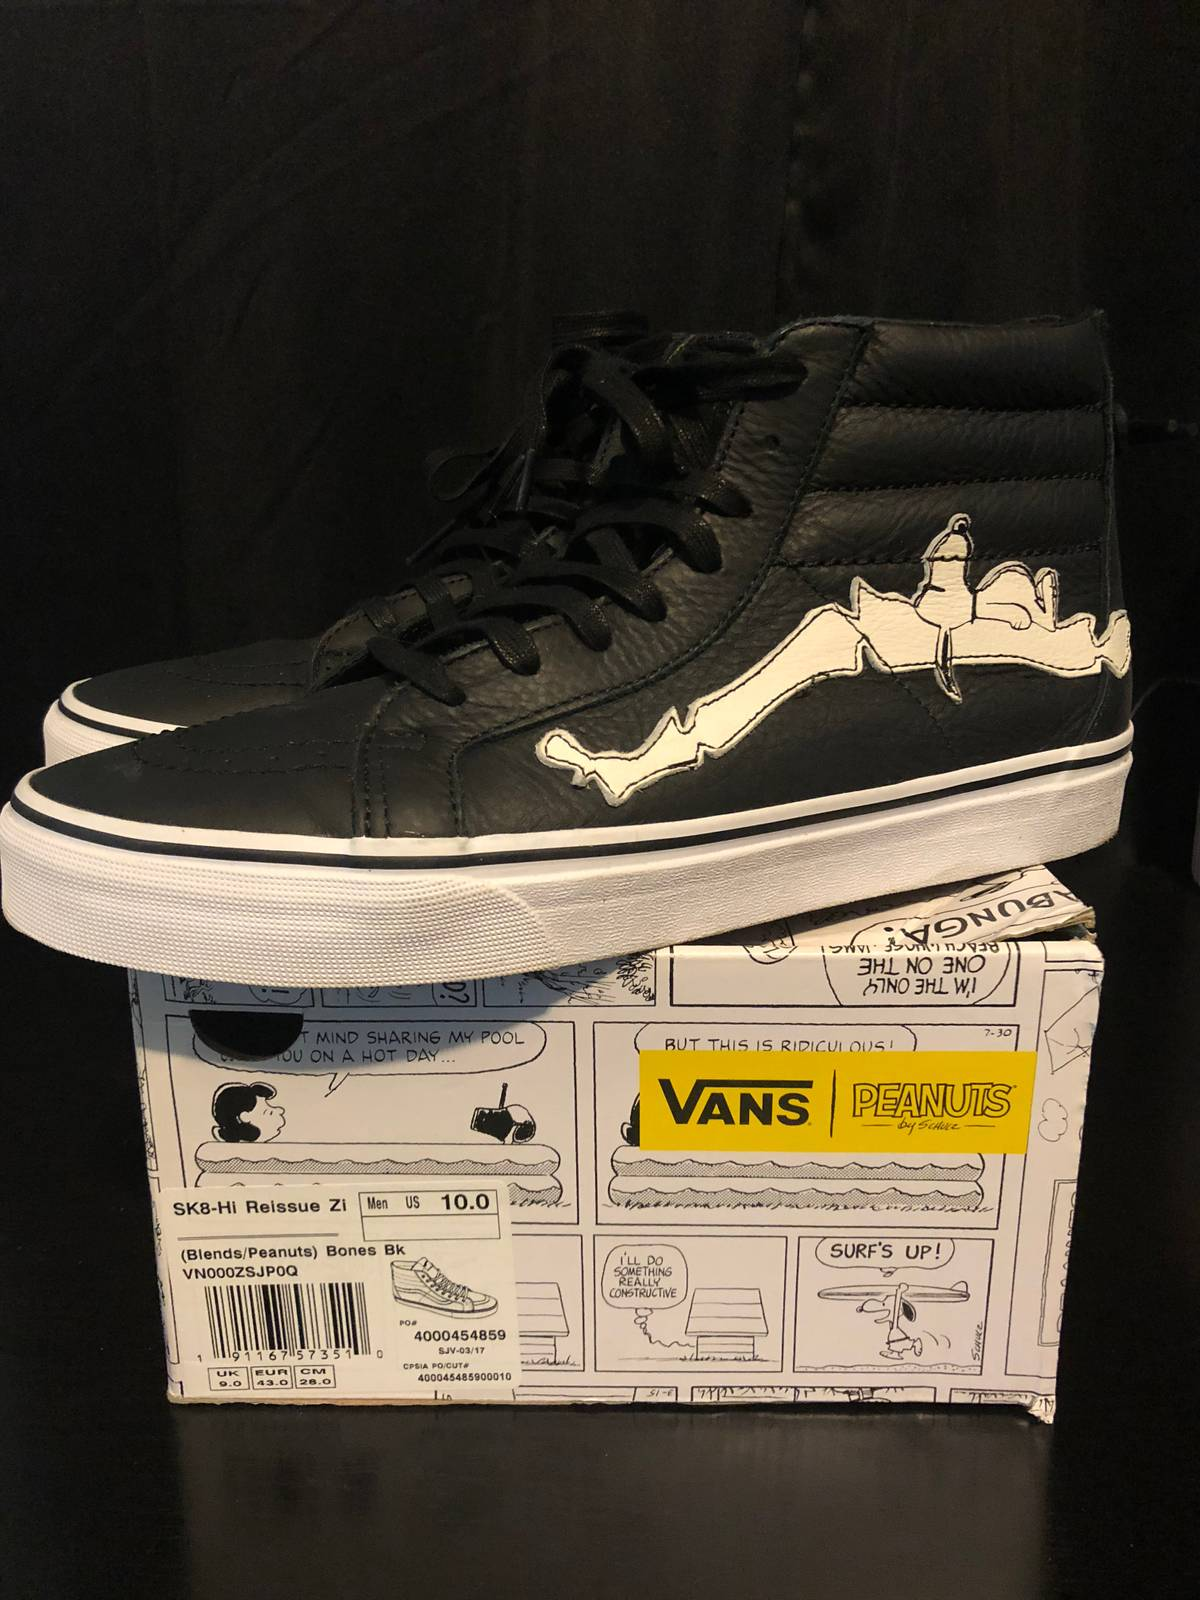 72dcb7c87d Vans BLENDS X VANS VAULT SK8 HI REISSUE ZIP LX PEANUTS BONES M Size 10 Size  10 - Hi-Top Sneakers for Sale - Grailed